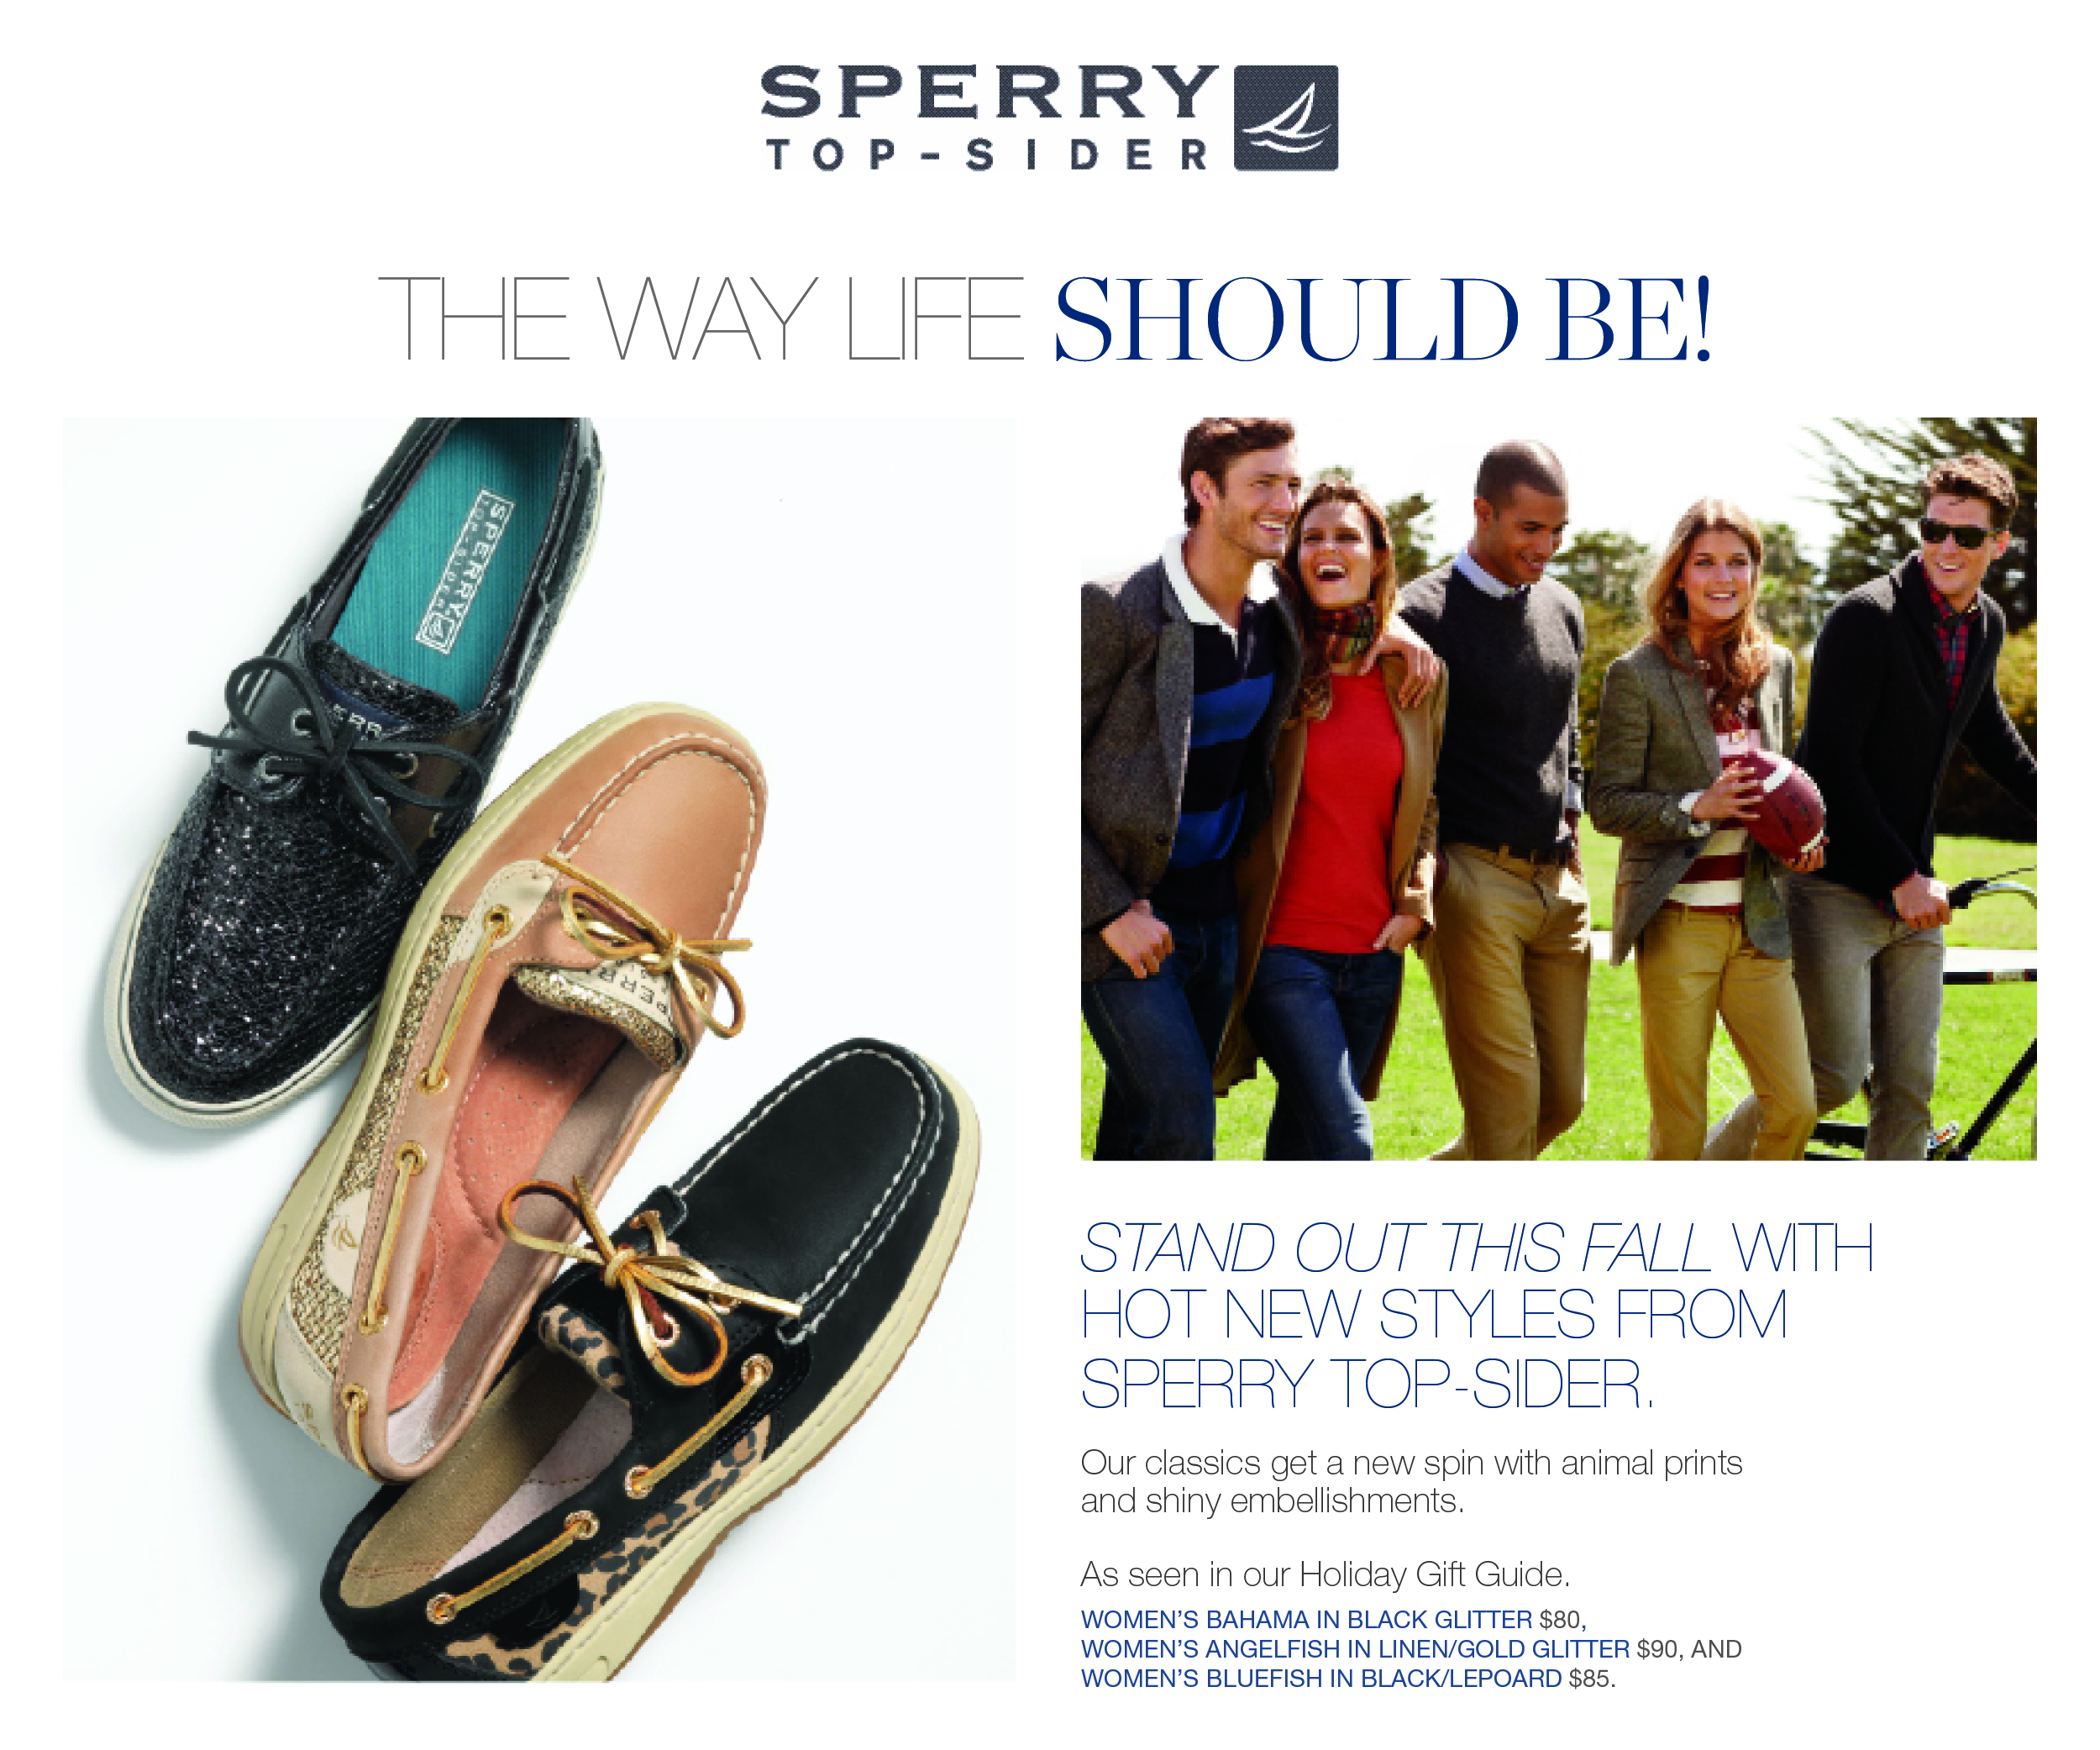 DIGITAL — Creative direction, shoot art direction and layout for sperrytopsider.com and wholesaleaccount e-blasts.